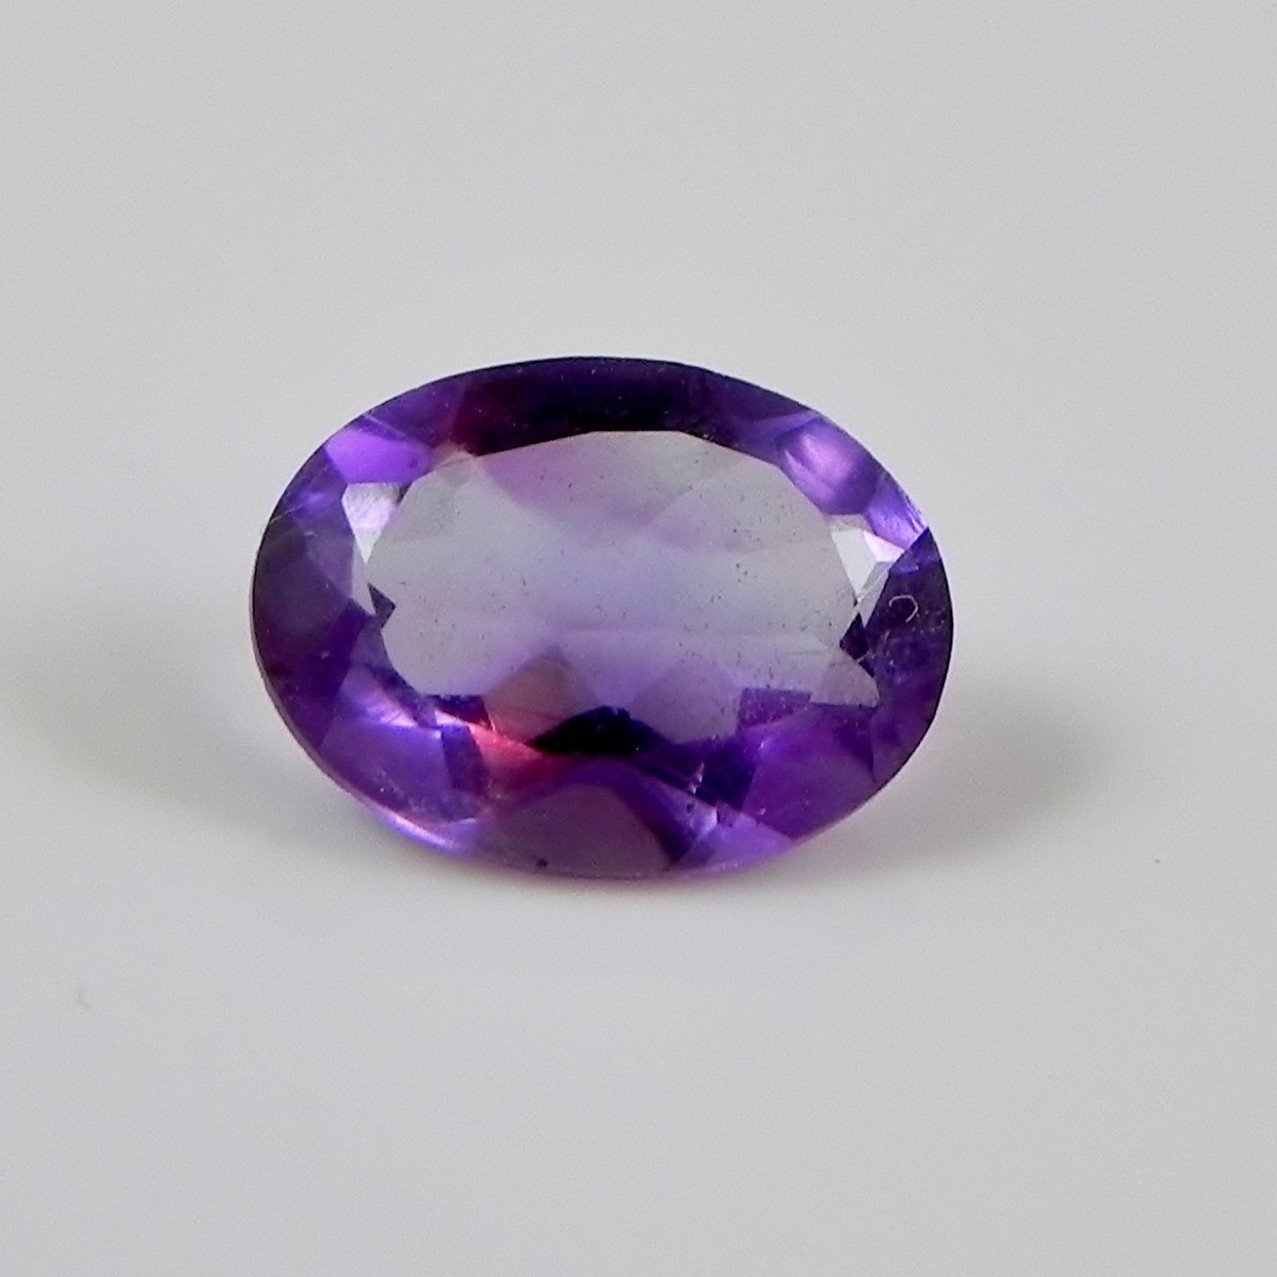 Certified Natural Amethyst AAA Quality 9x7 mm Faceted Oval 5 pcs lot loose gemstone